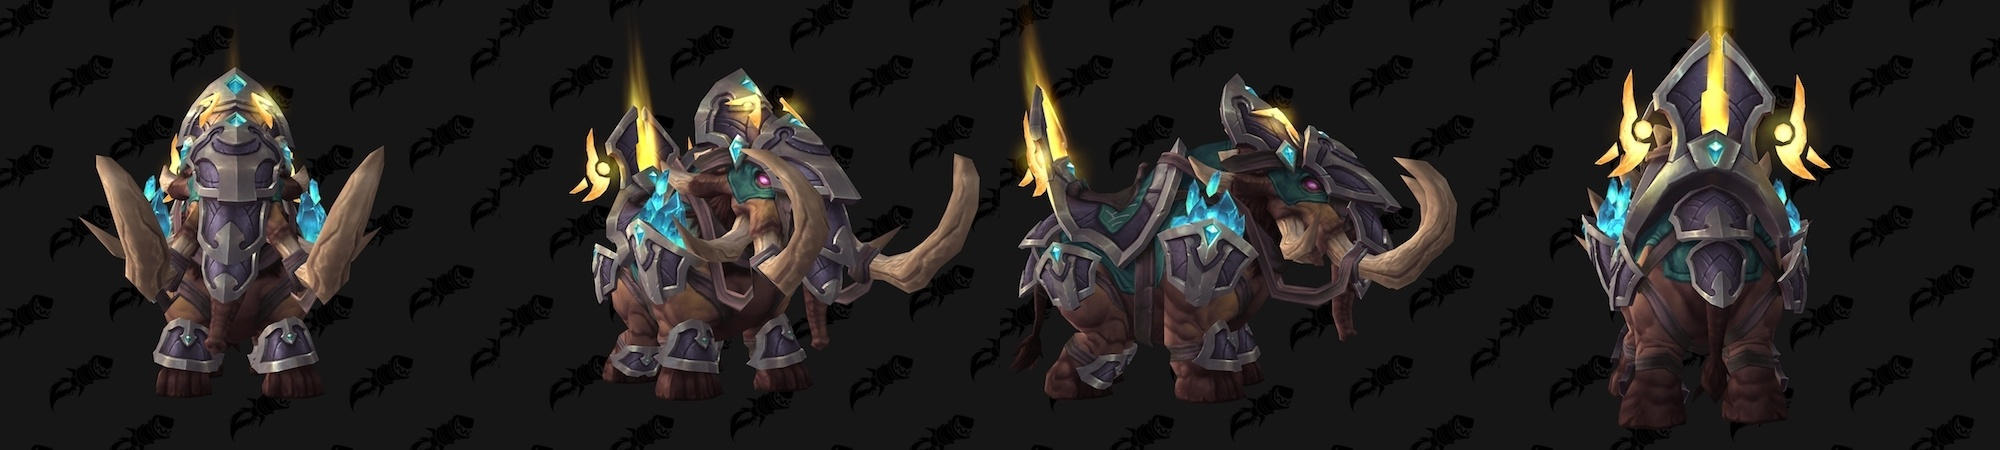 Army Of The Light Reputation Guide Guides Wowhead